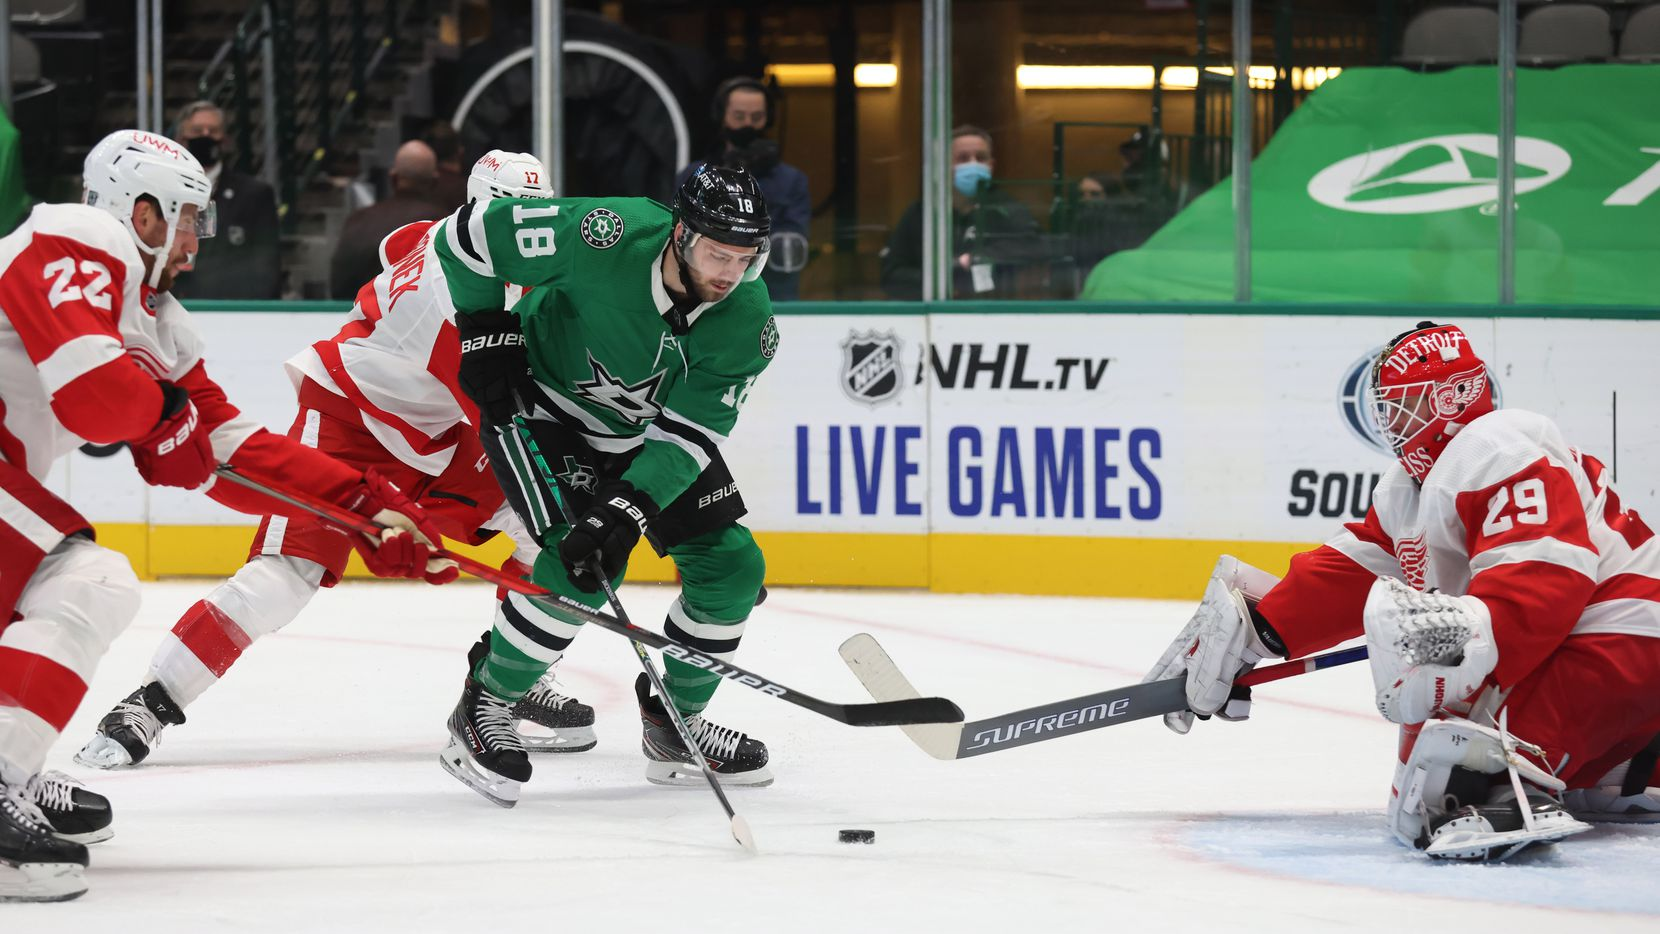 Dallas Stars center Jason Dickinson (18) looks to shoot as Detroit Red Wings defenseman Patrik Nemeth (22) and Detroit Red Wings goaltender Thomas Greiss (29) defend the goal during the first period of play at American Airlines Center on Tuesday, January 26, 2021 in Dallas.